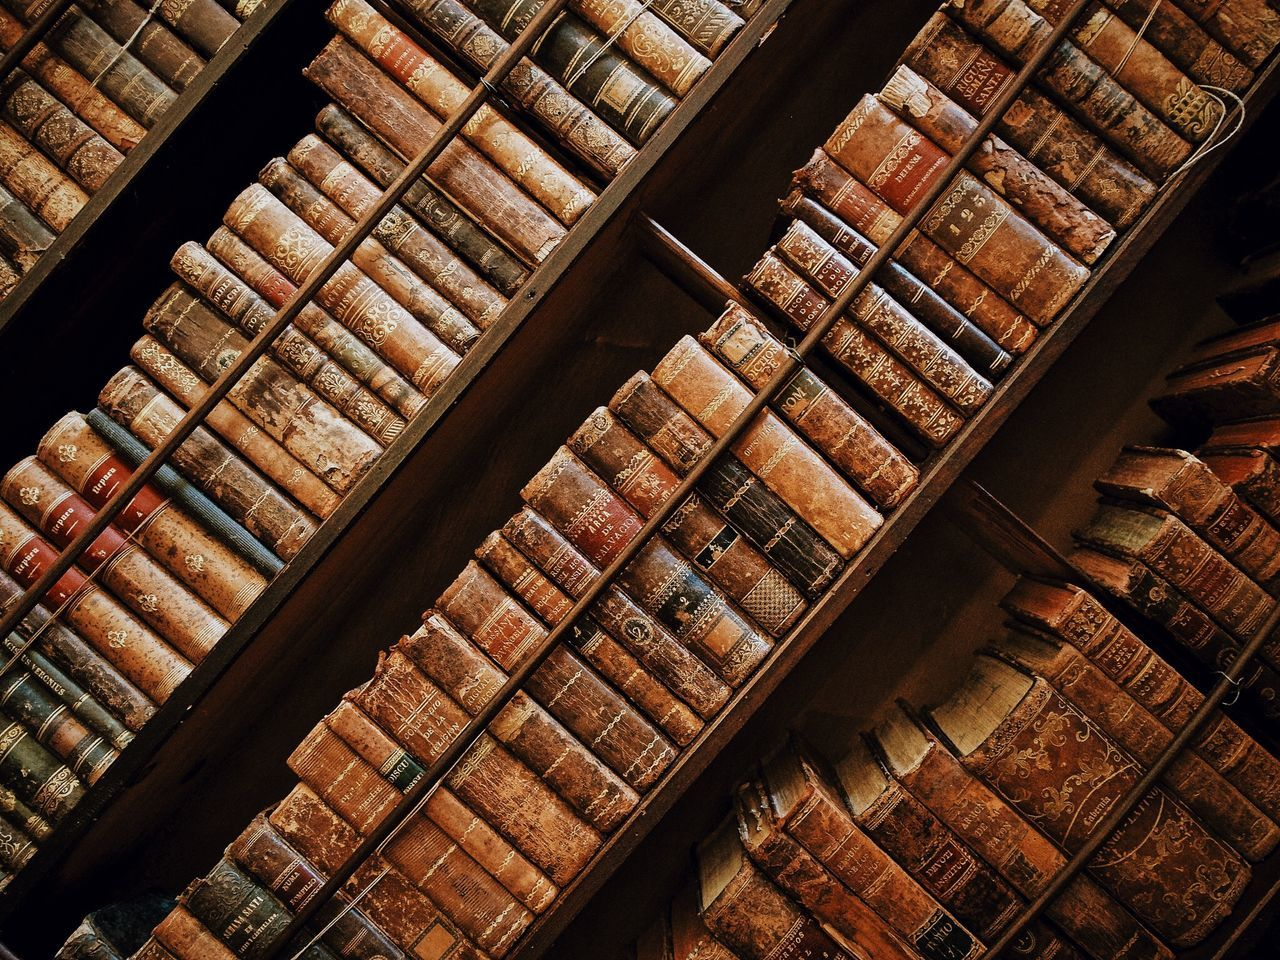 The beauty of the past... Backgrounds Book Books Bookshelf Close-up Day Development Full Frame High Angle View Iron - Metal Library Multi Colored No People Roof Beam